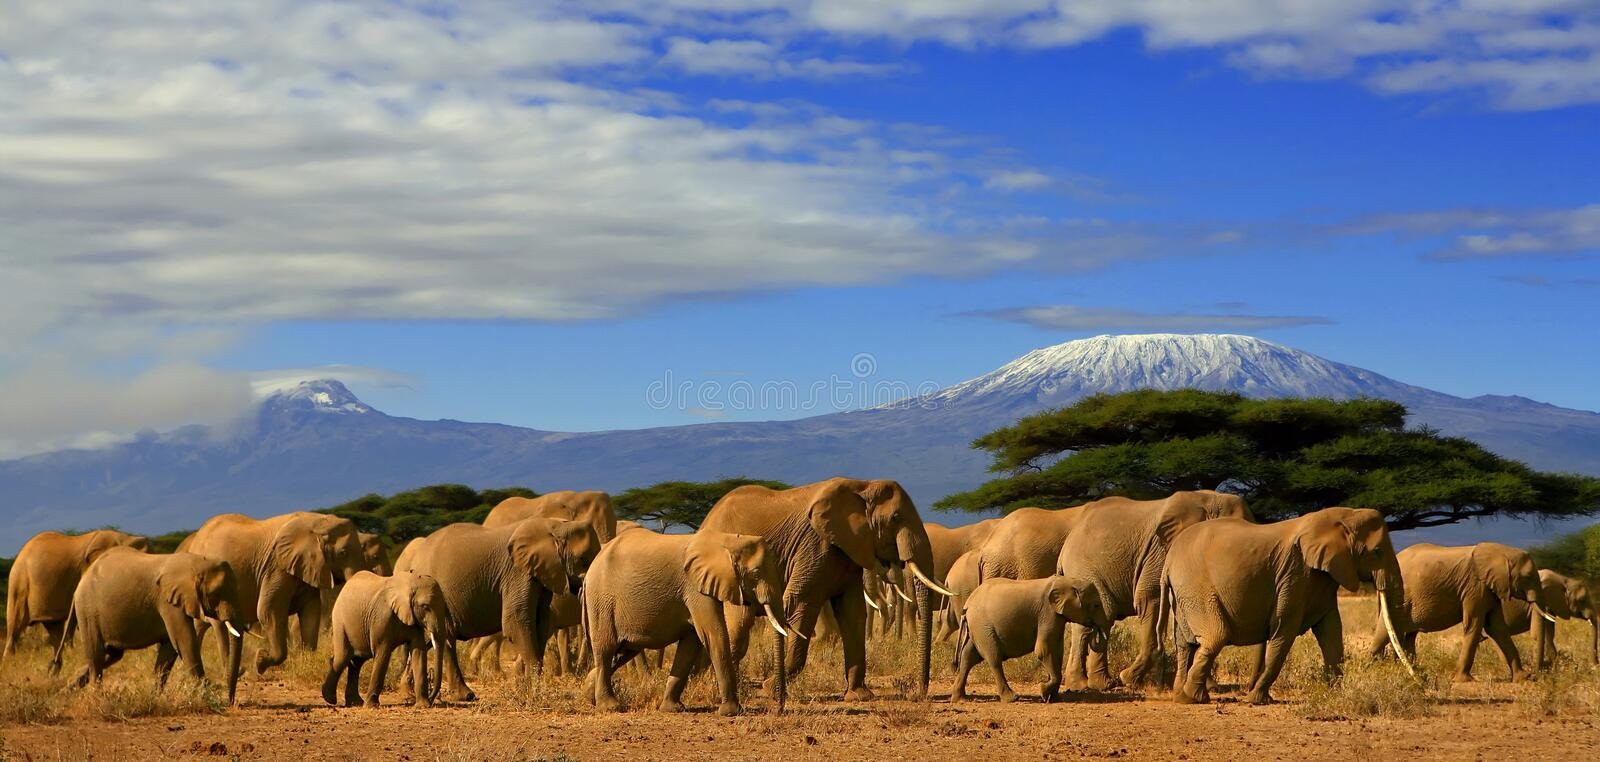 Kilimanjaro Elephants. An image of a herd of african elephants in kenya with kilimanjaro in the background